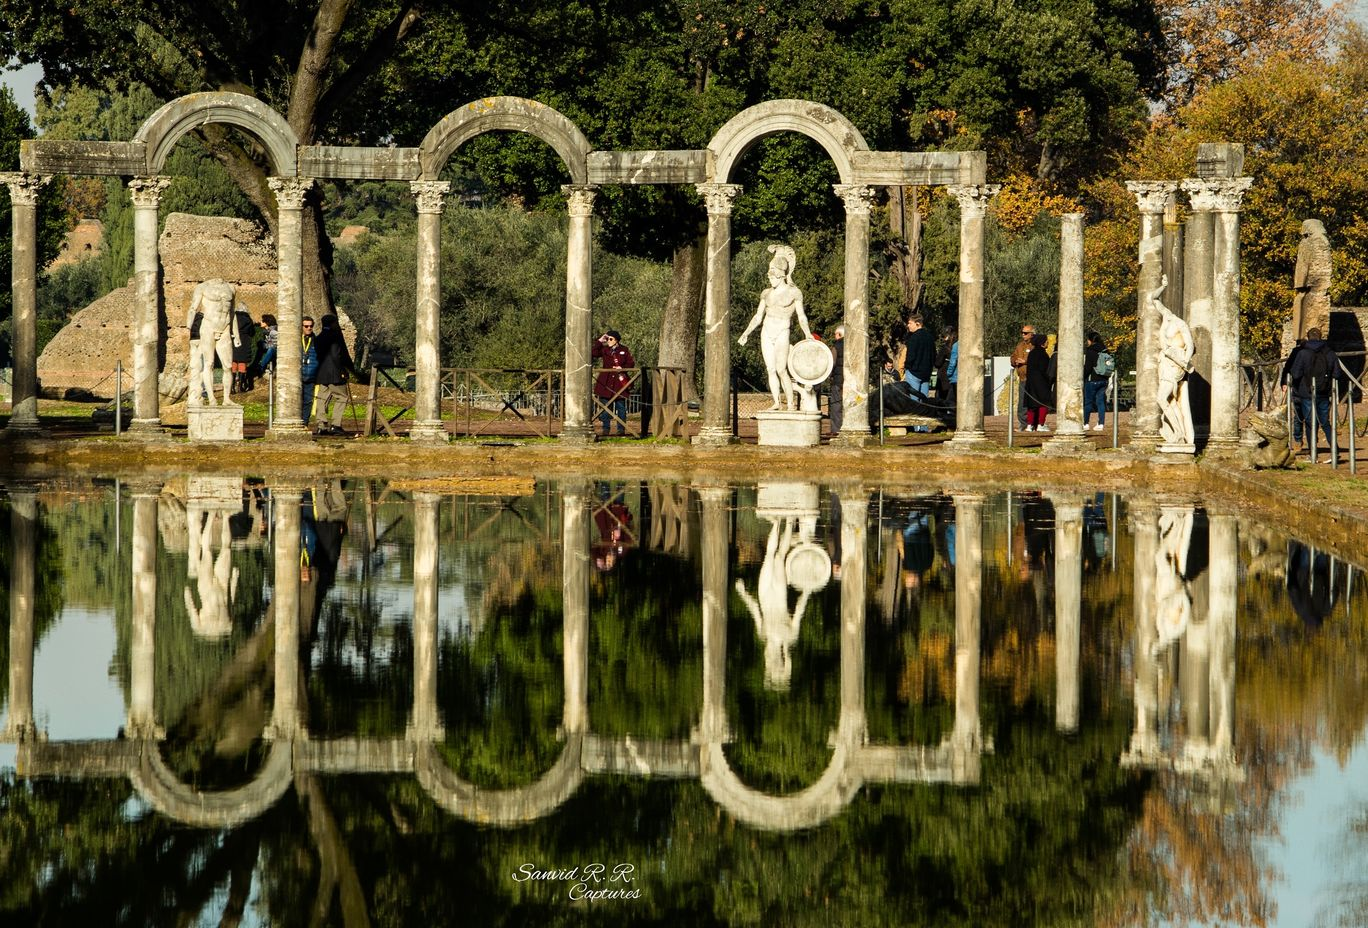 Photo of Via di Villa Adriana By Sanvid